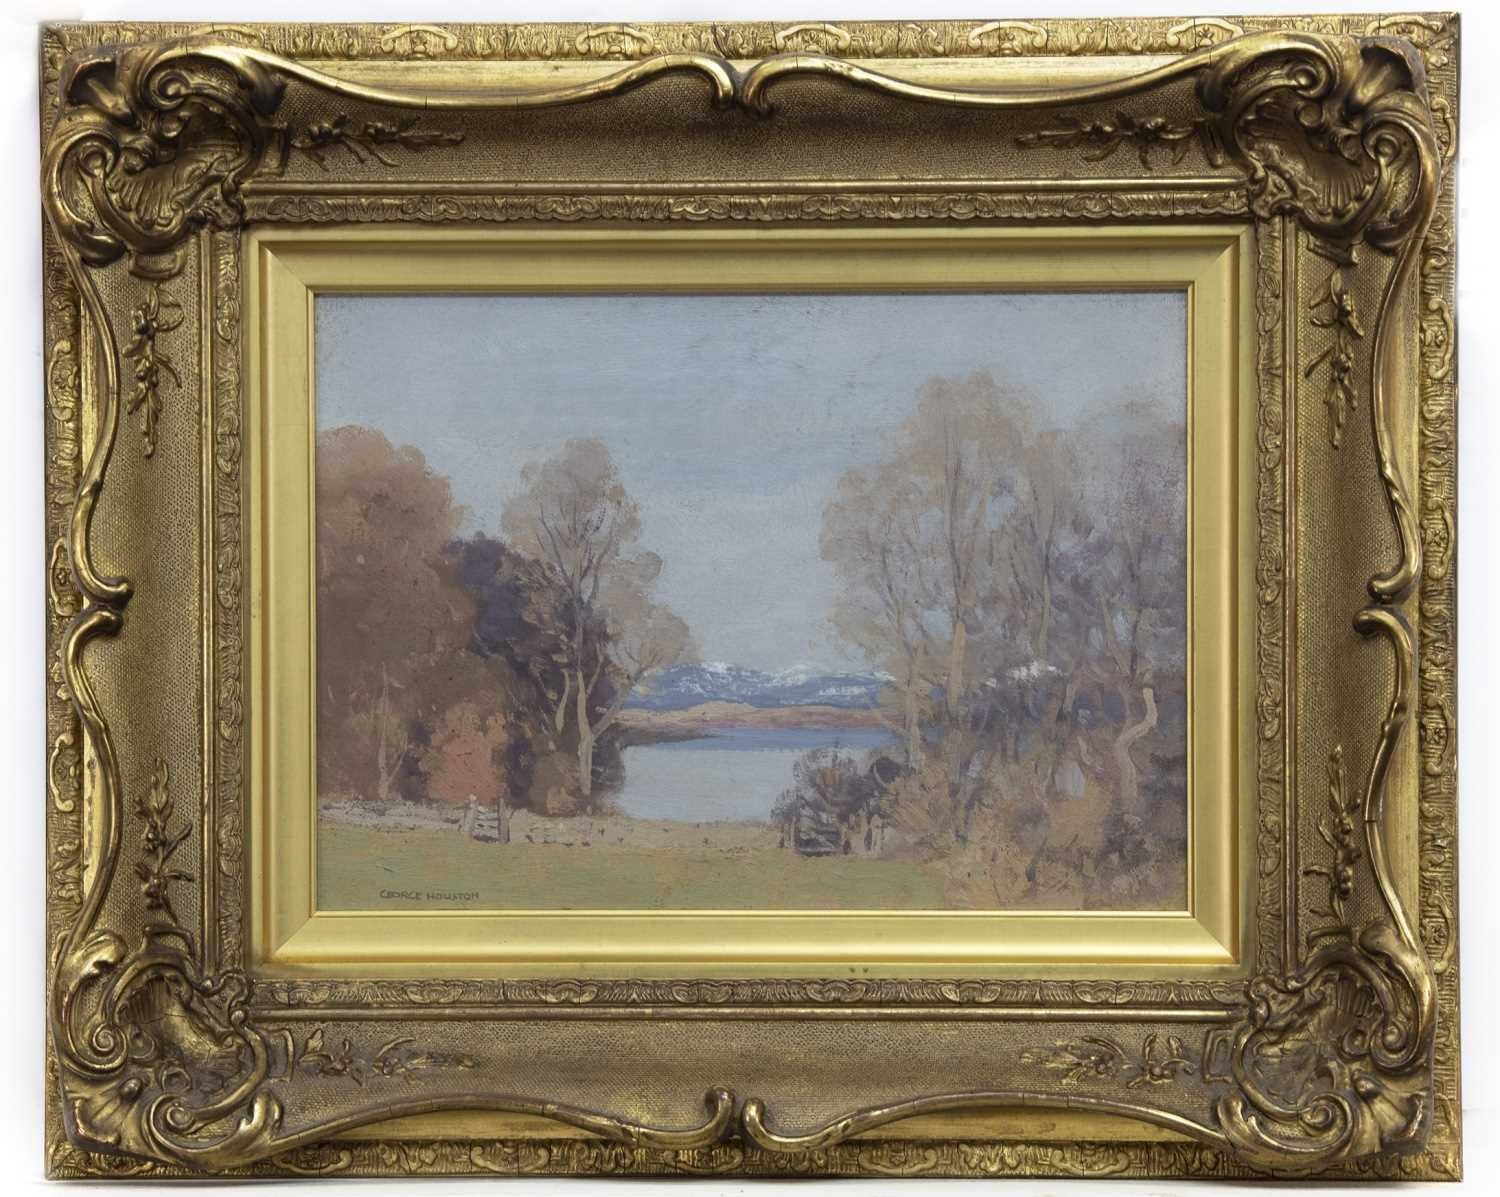 Lot 2003 - LOCH SCENE WITH DISTANT SNOW, BY GEORGE HOUSTON